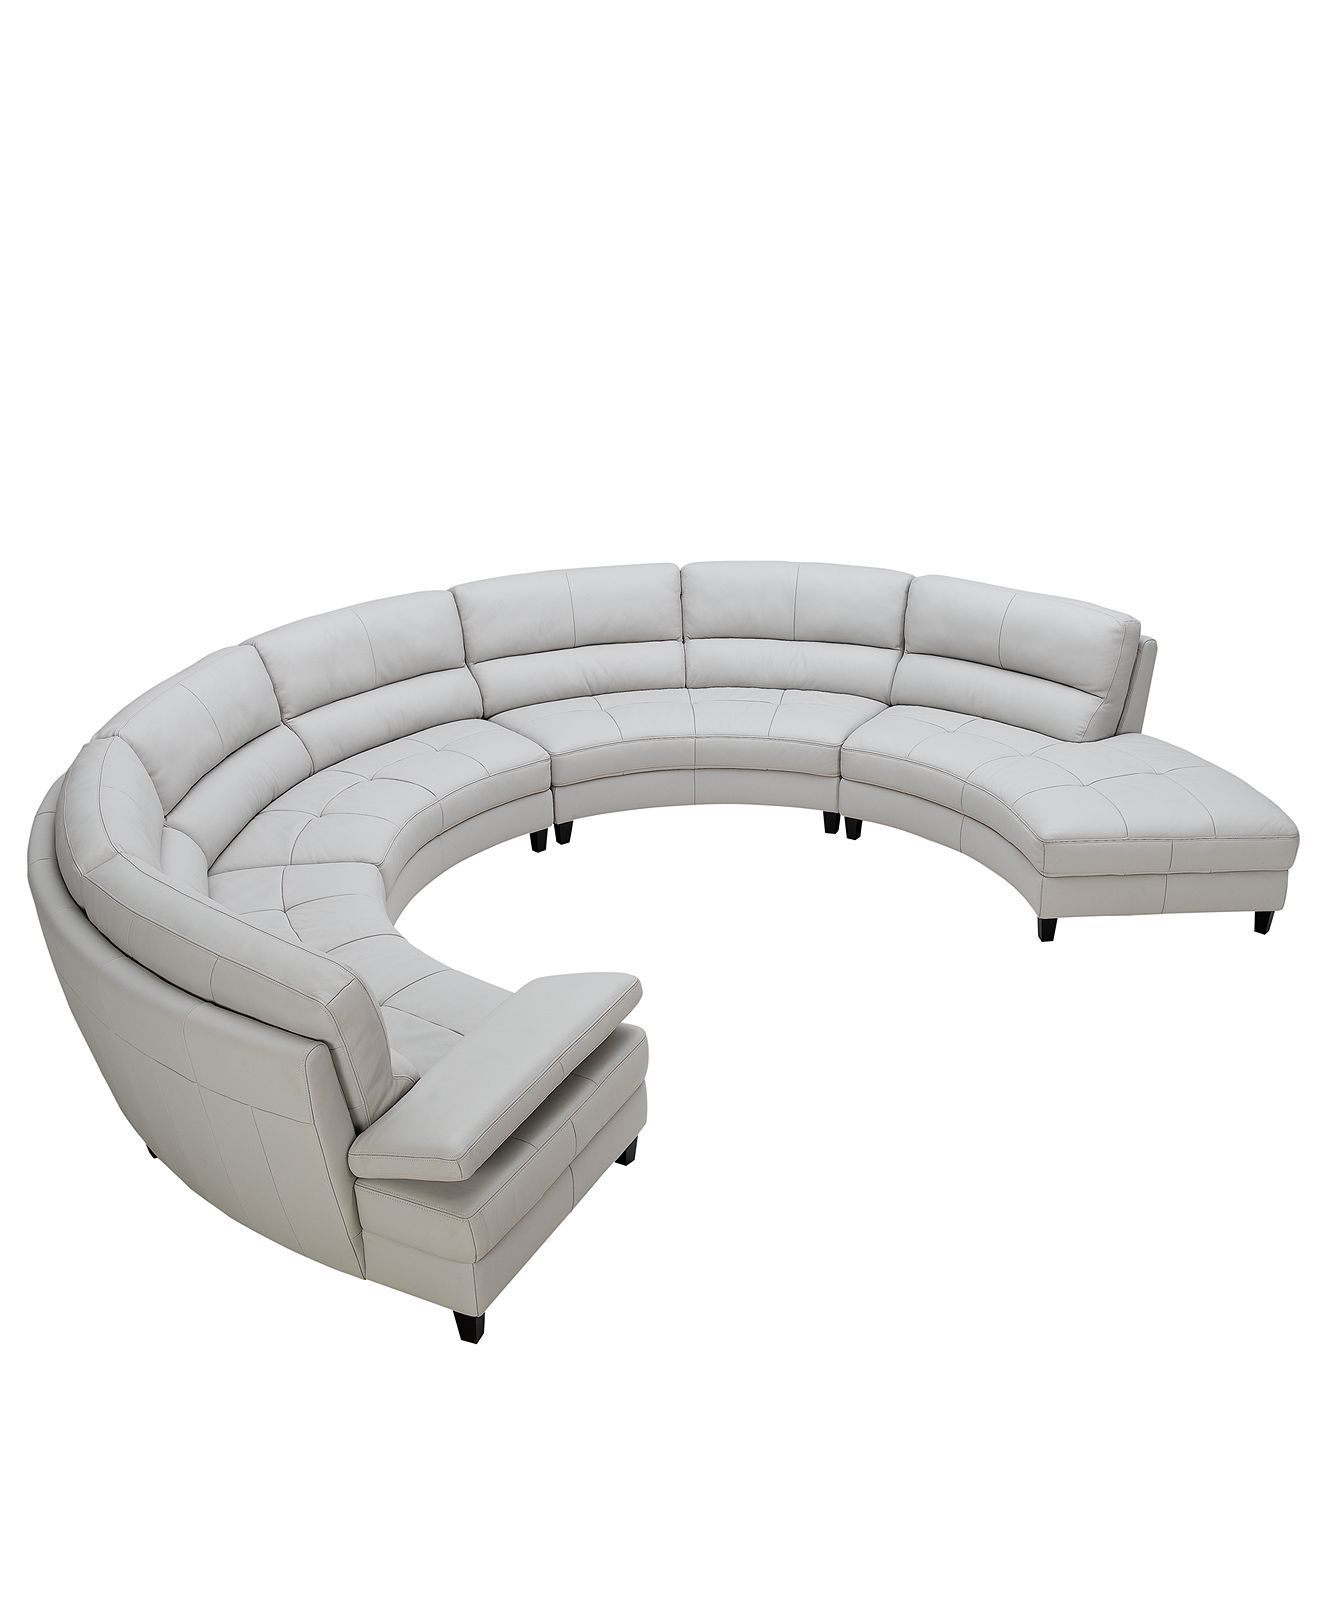 Best Franchesca Leather Sectional Sofa 4 Piece Round Sofa 400 x 300